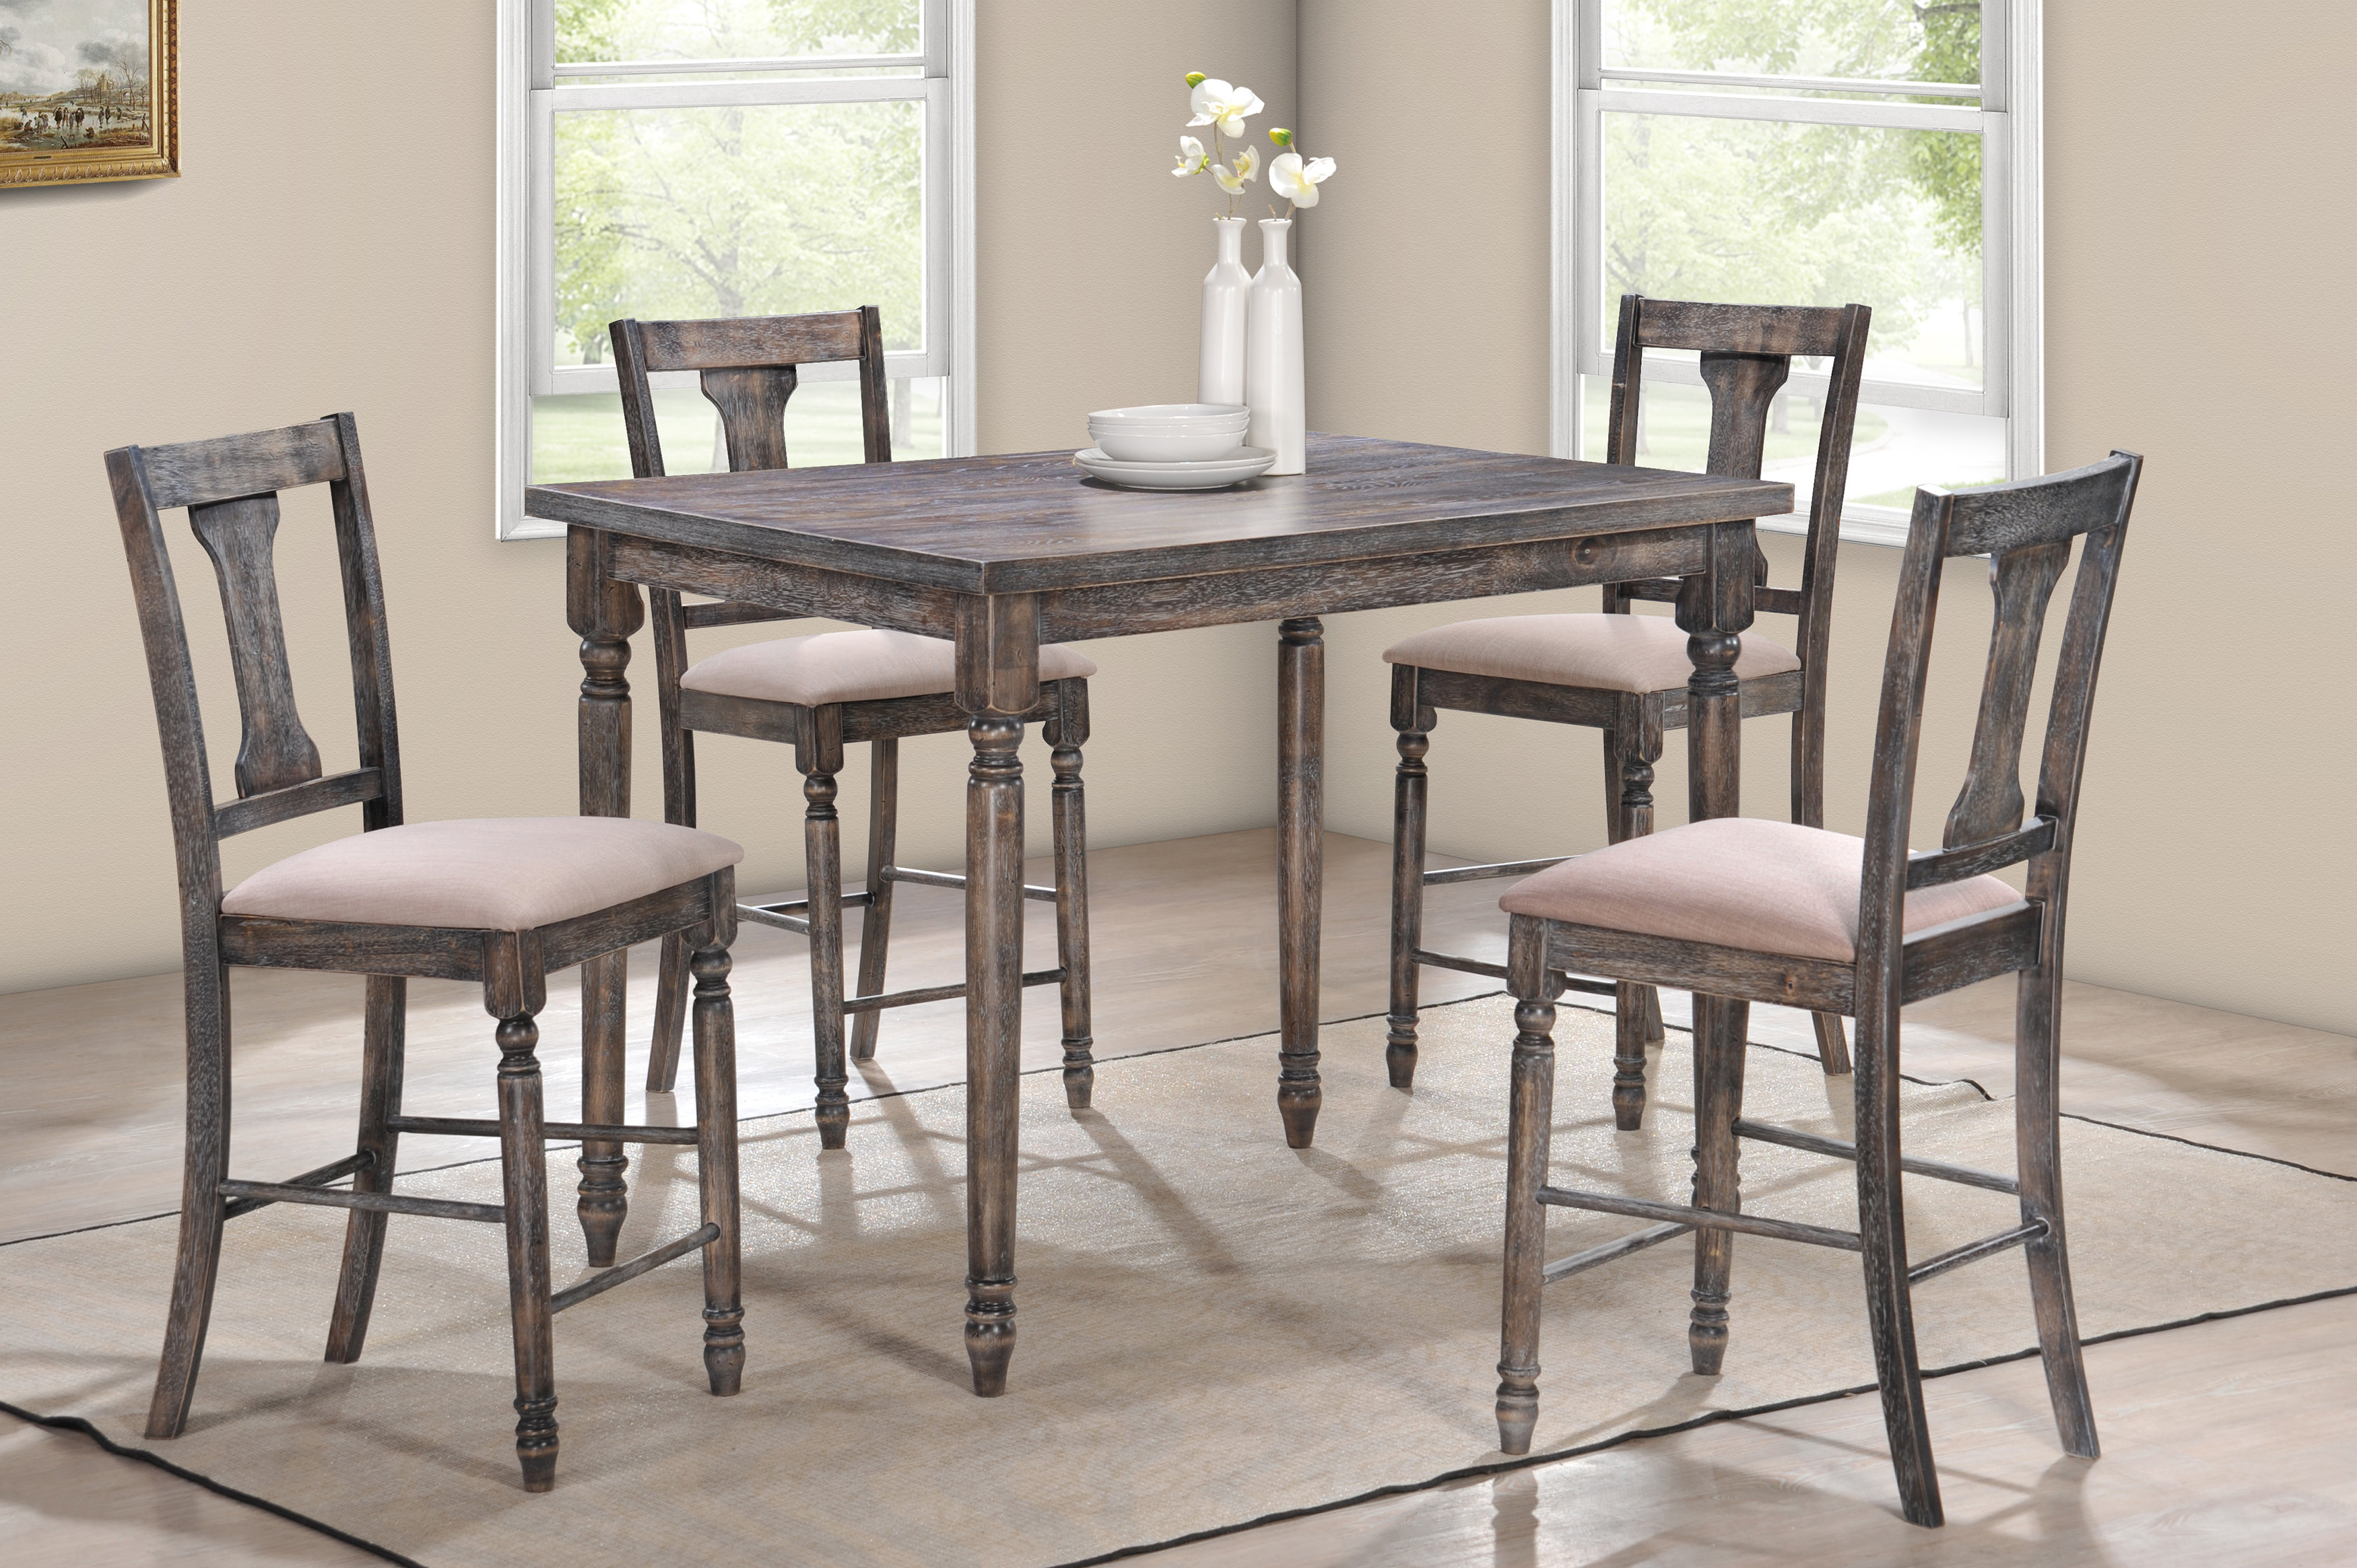 Joss & Main Within Favorite Goodman 5 Piece Solid Wood Dining Sets (Set Of 5) (View 13 of 25)